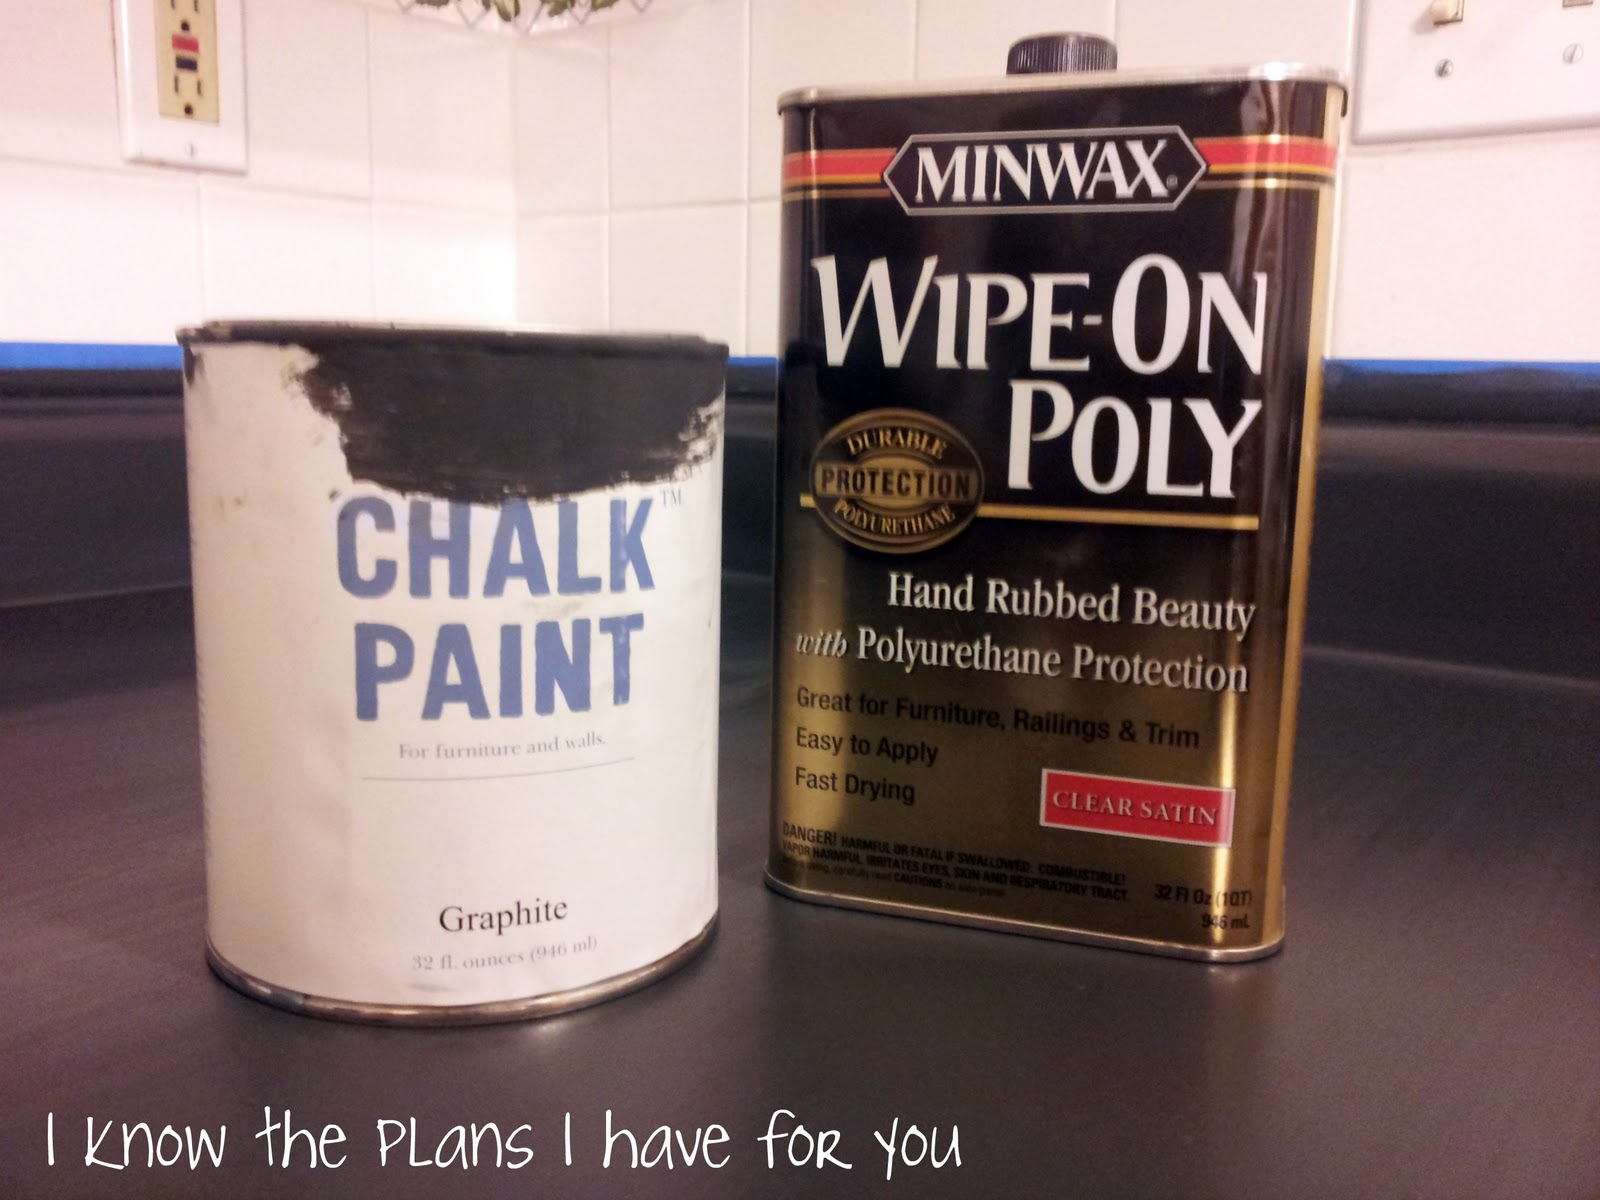 Countertop Chalkboard Paint : ... Plans I Have For You: Ive PAINTED the counter tops with CHALK PAINT